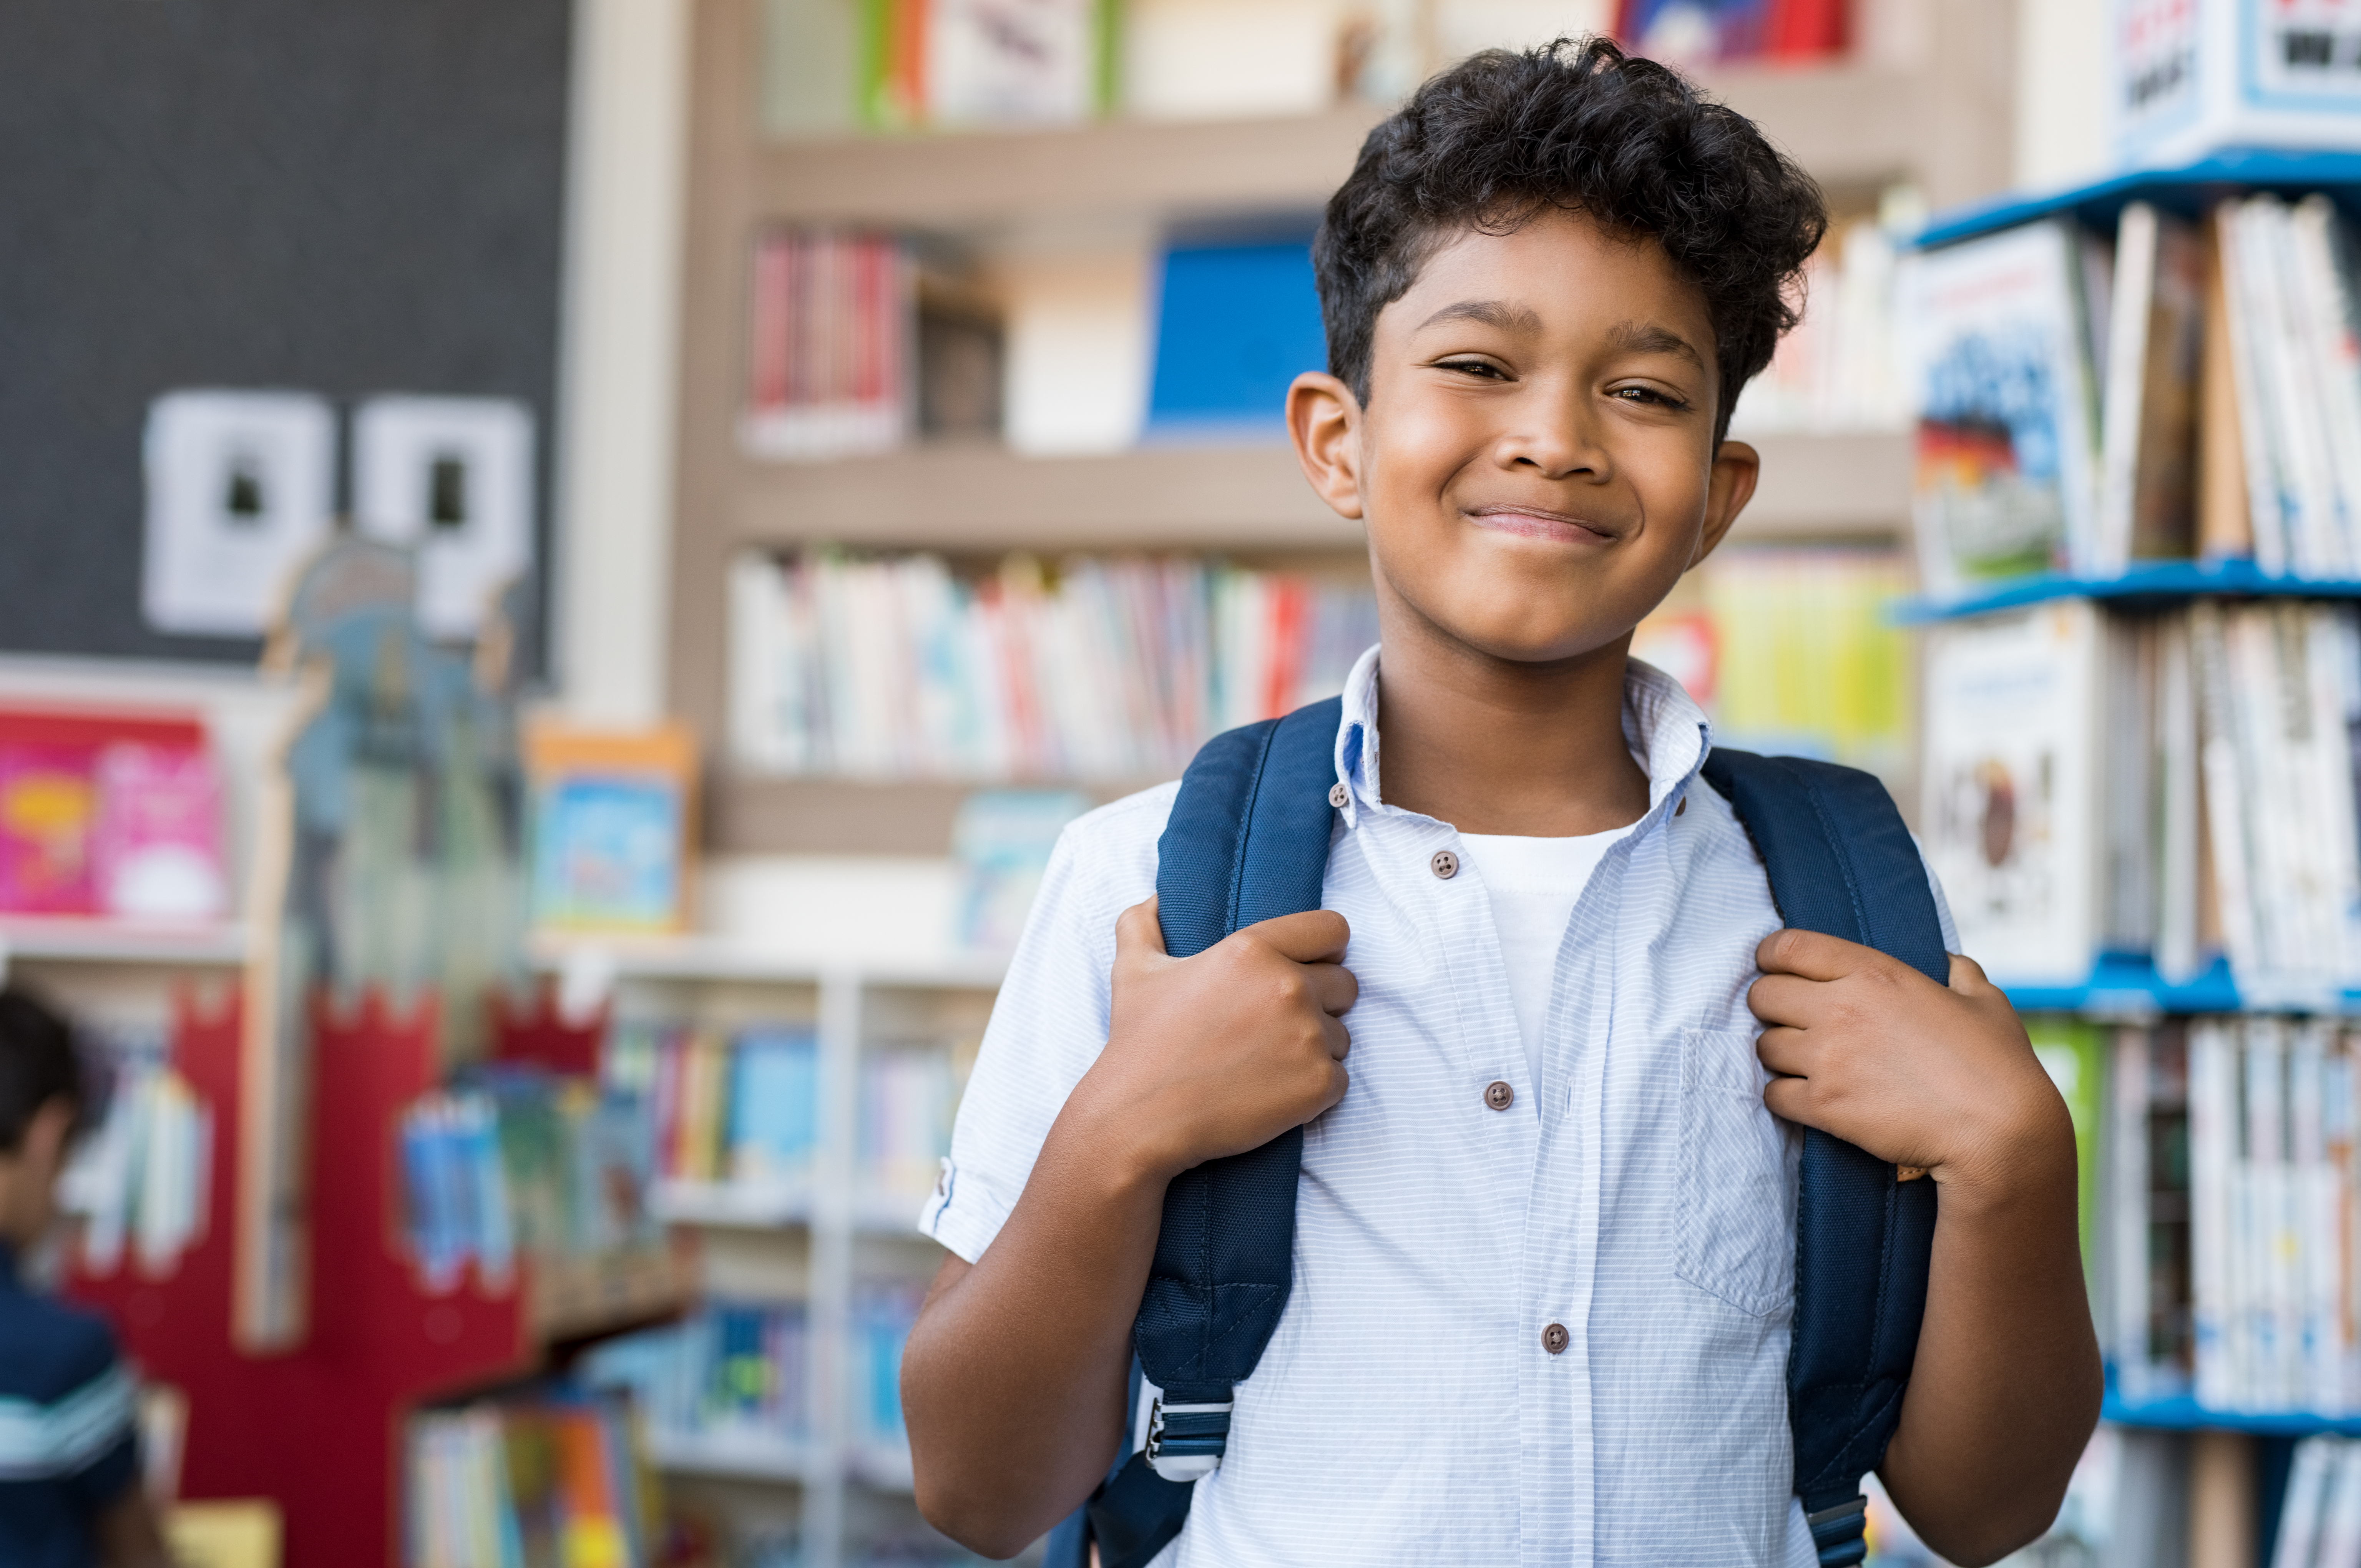 smiling hispanic boy at school PDQS85C - Children May Suffer Long-term Consequences of Technology Use